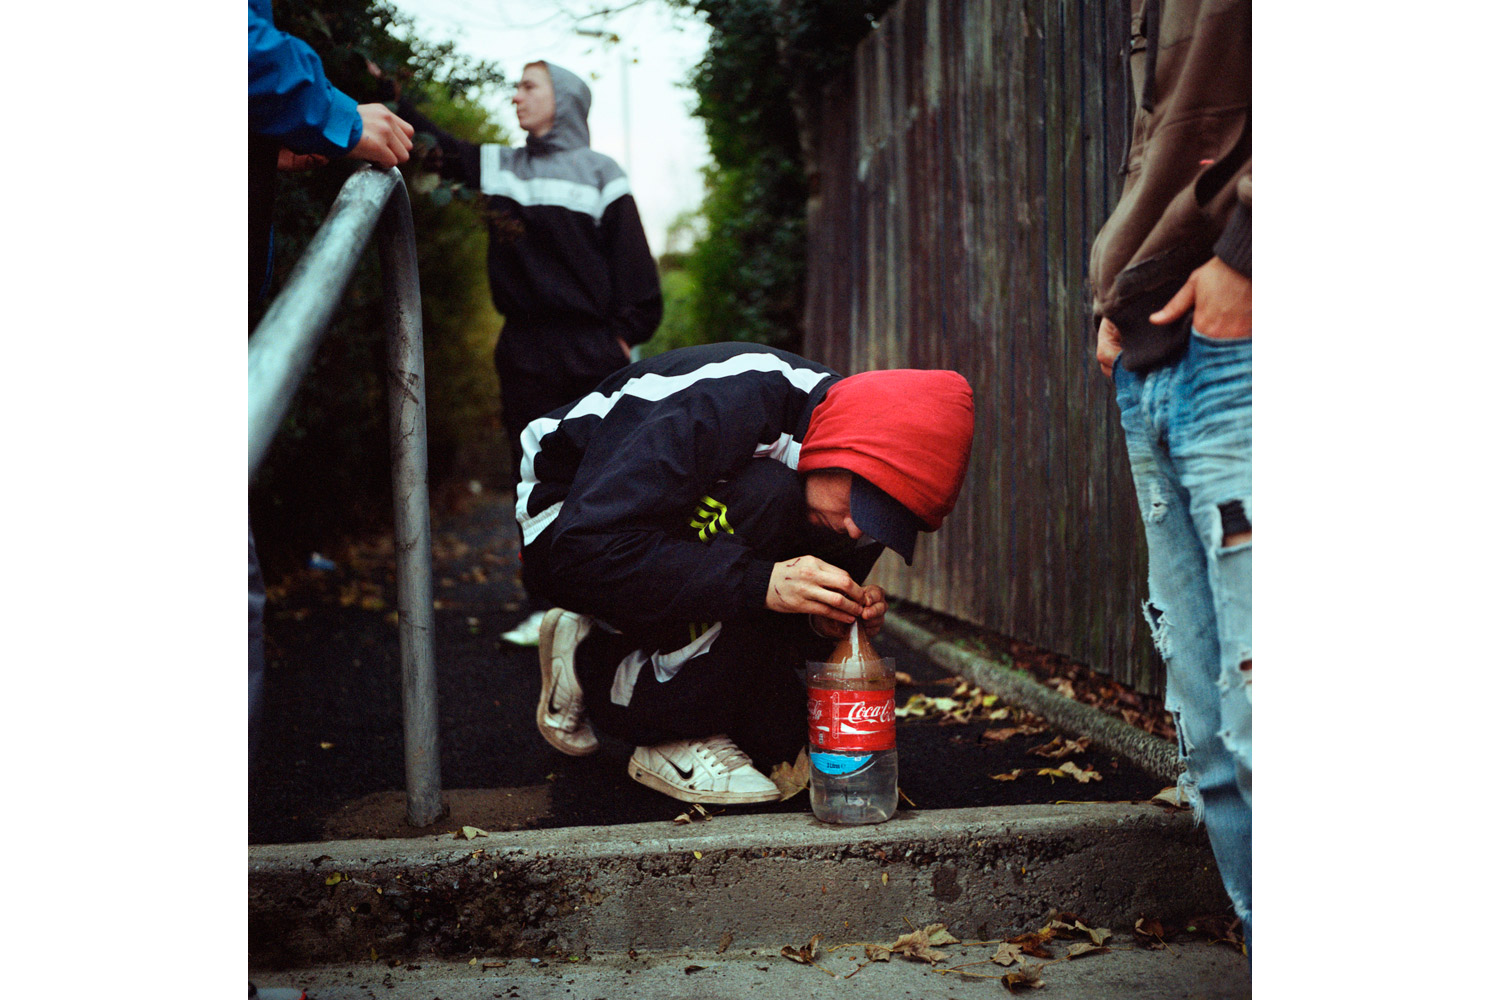 Youth in the Ballysillan area of North Belfast smoke marijuana in an alley. Many young people resent paramilitary groups like the UDA, partly because the groups now refuse to take on new recruits. 2010.